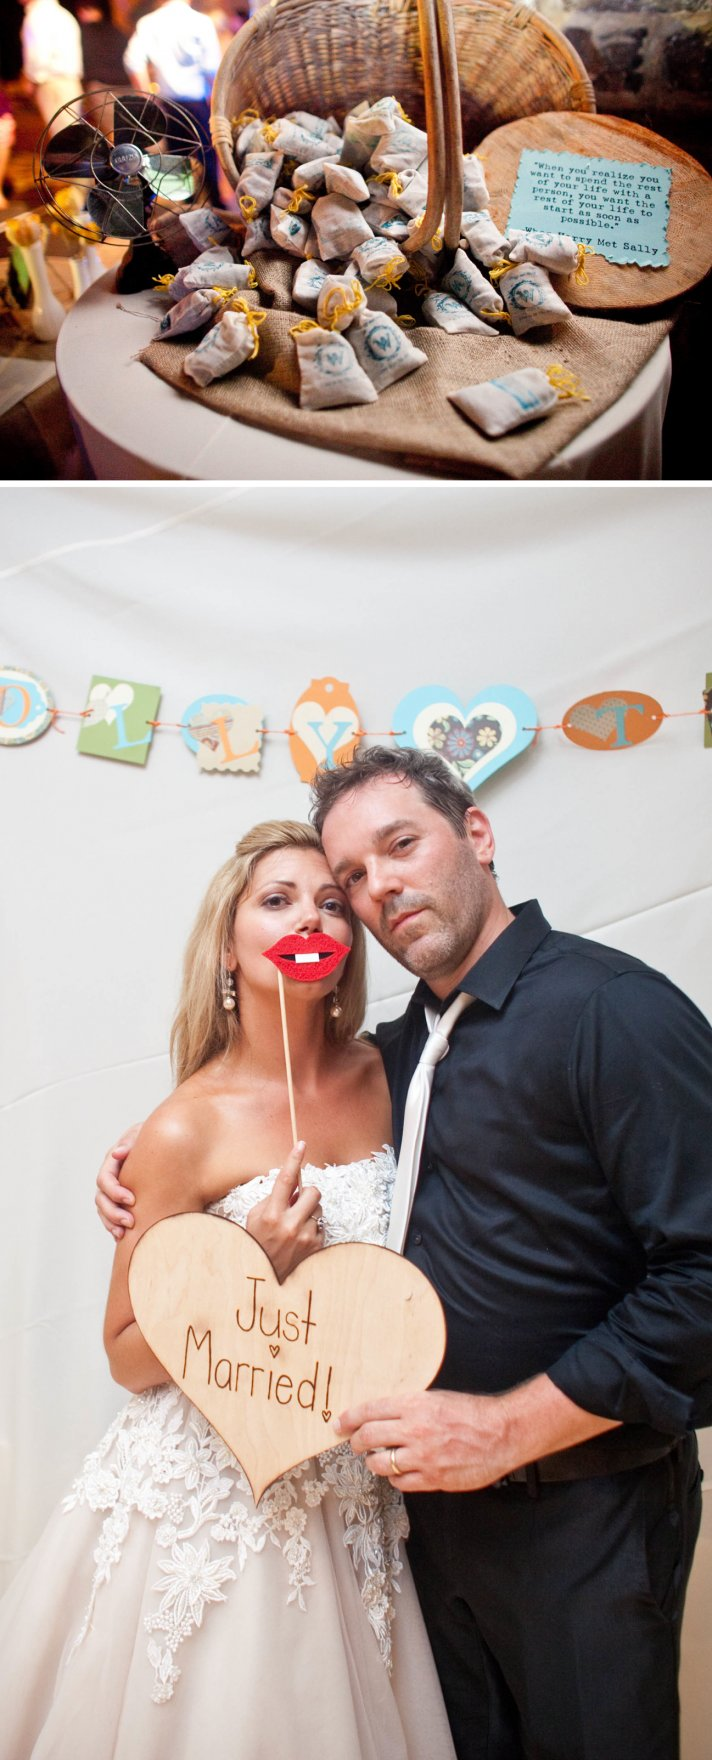 Southern summer wedding- white wedding cake, photobooth fun